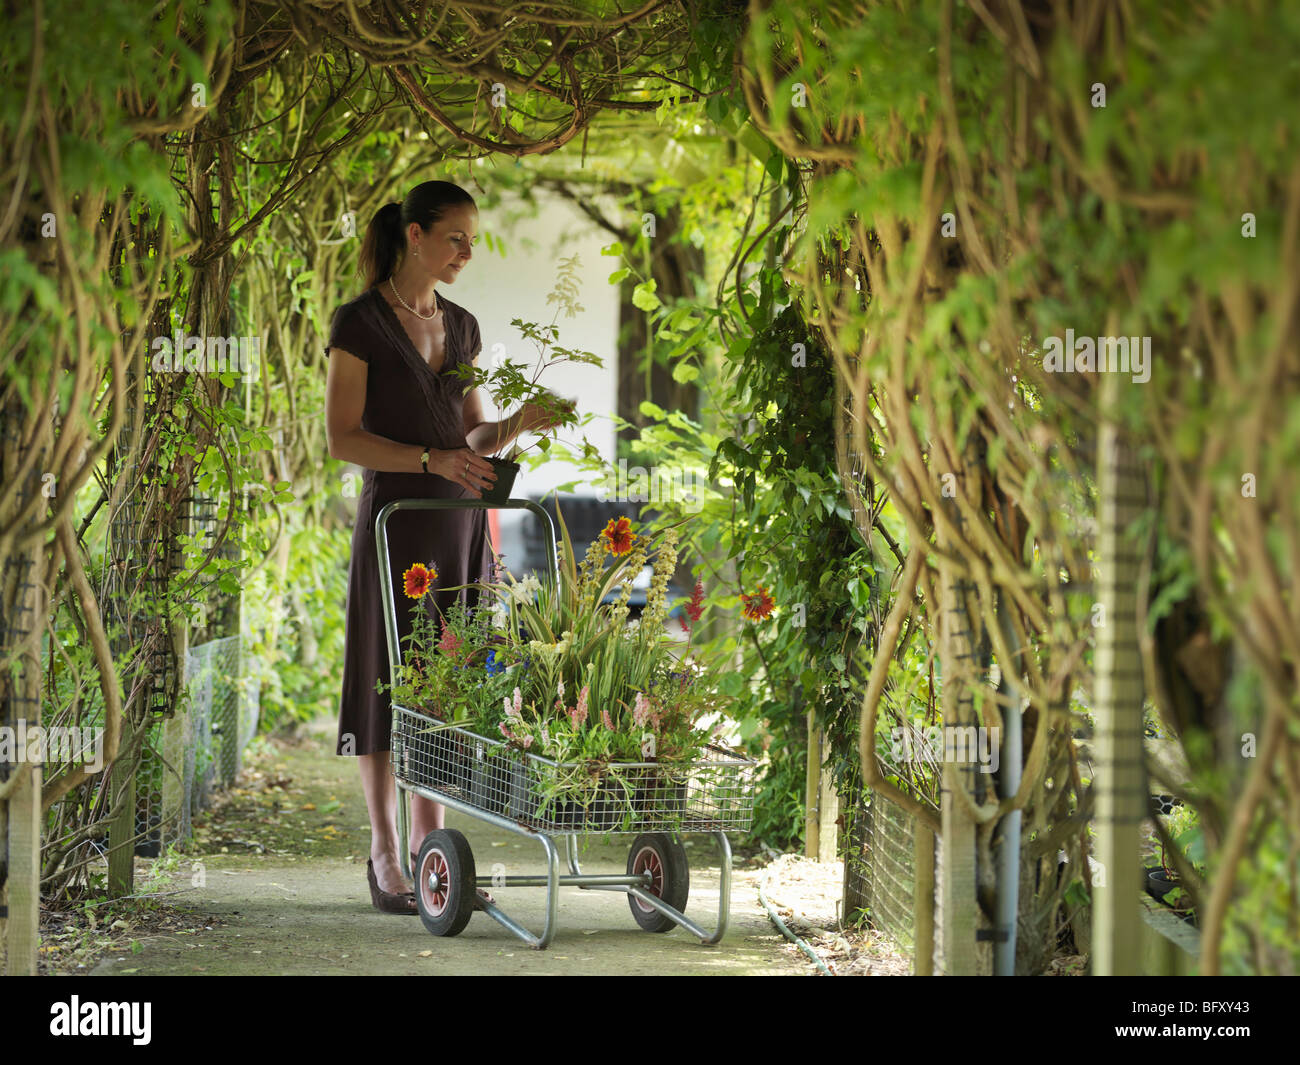 Lady Buying Plants At Garden Center - Stock Image